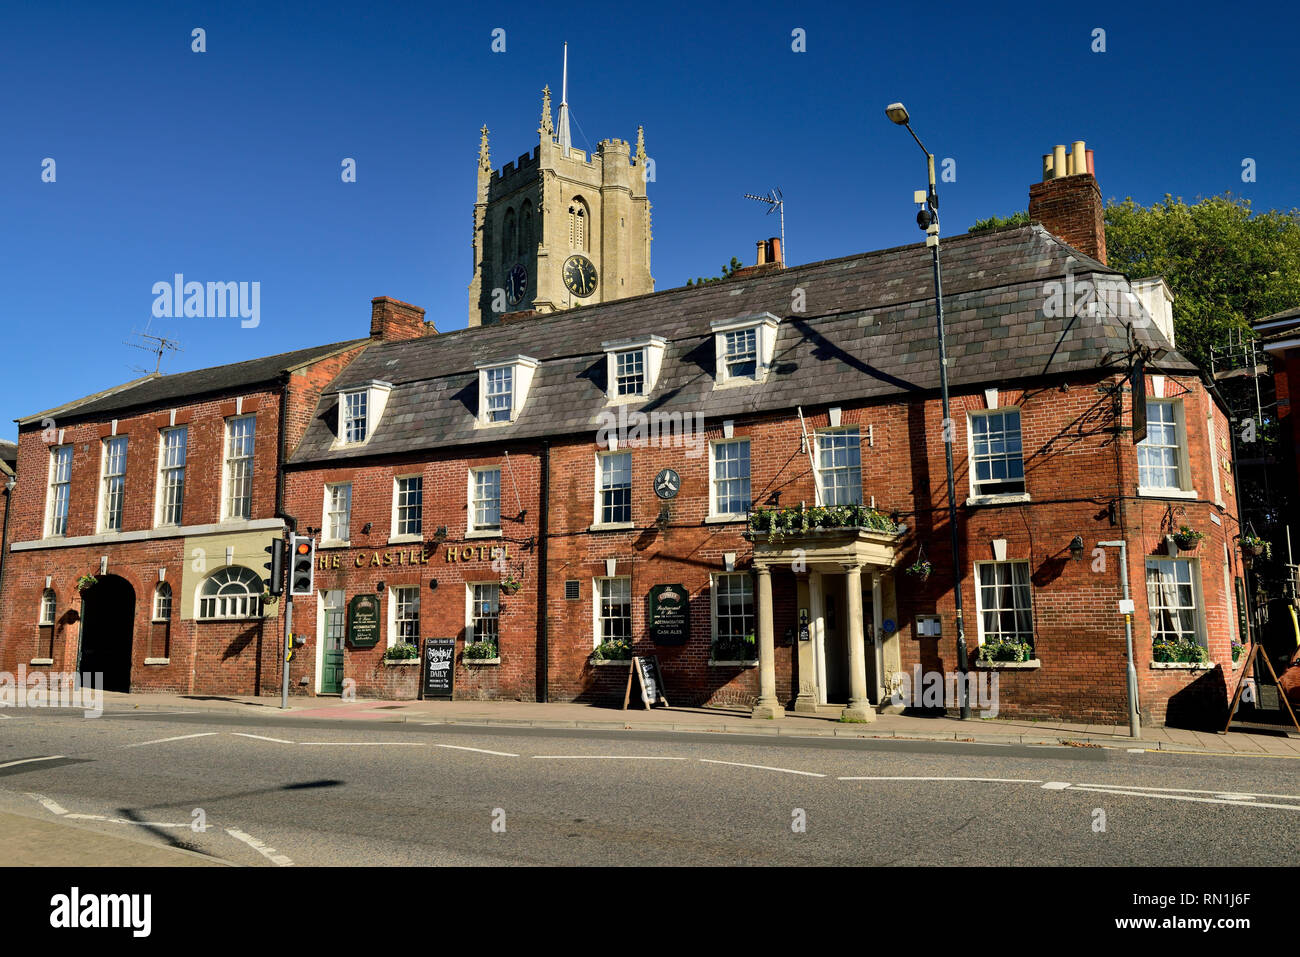 The Castle Hotel and the tower of St Mary's church in Devizes. - Stock Image